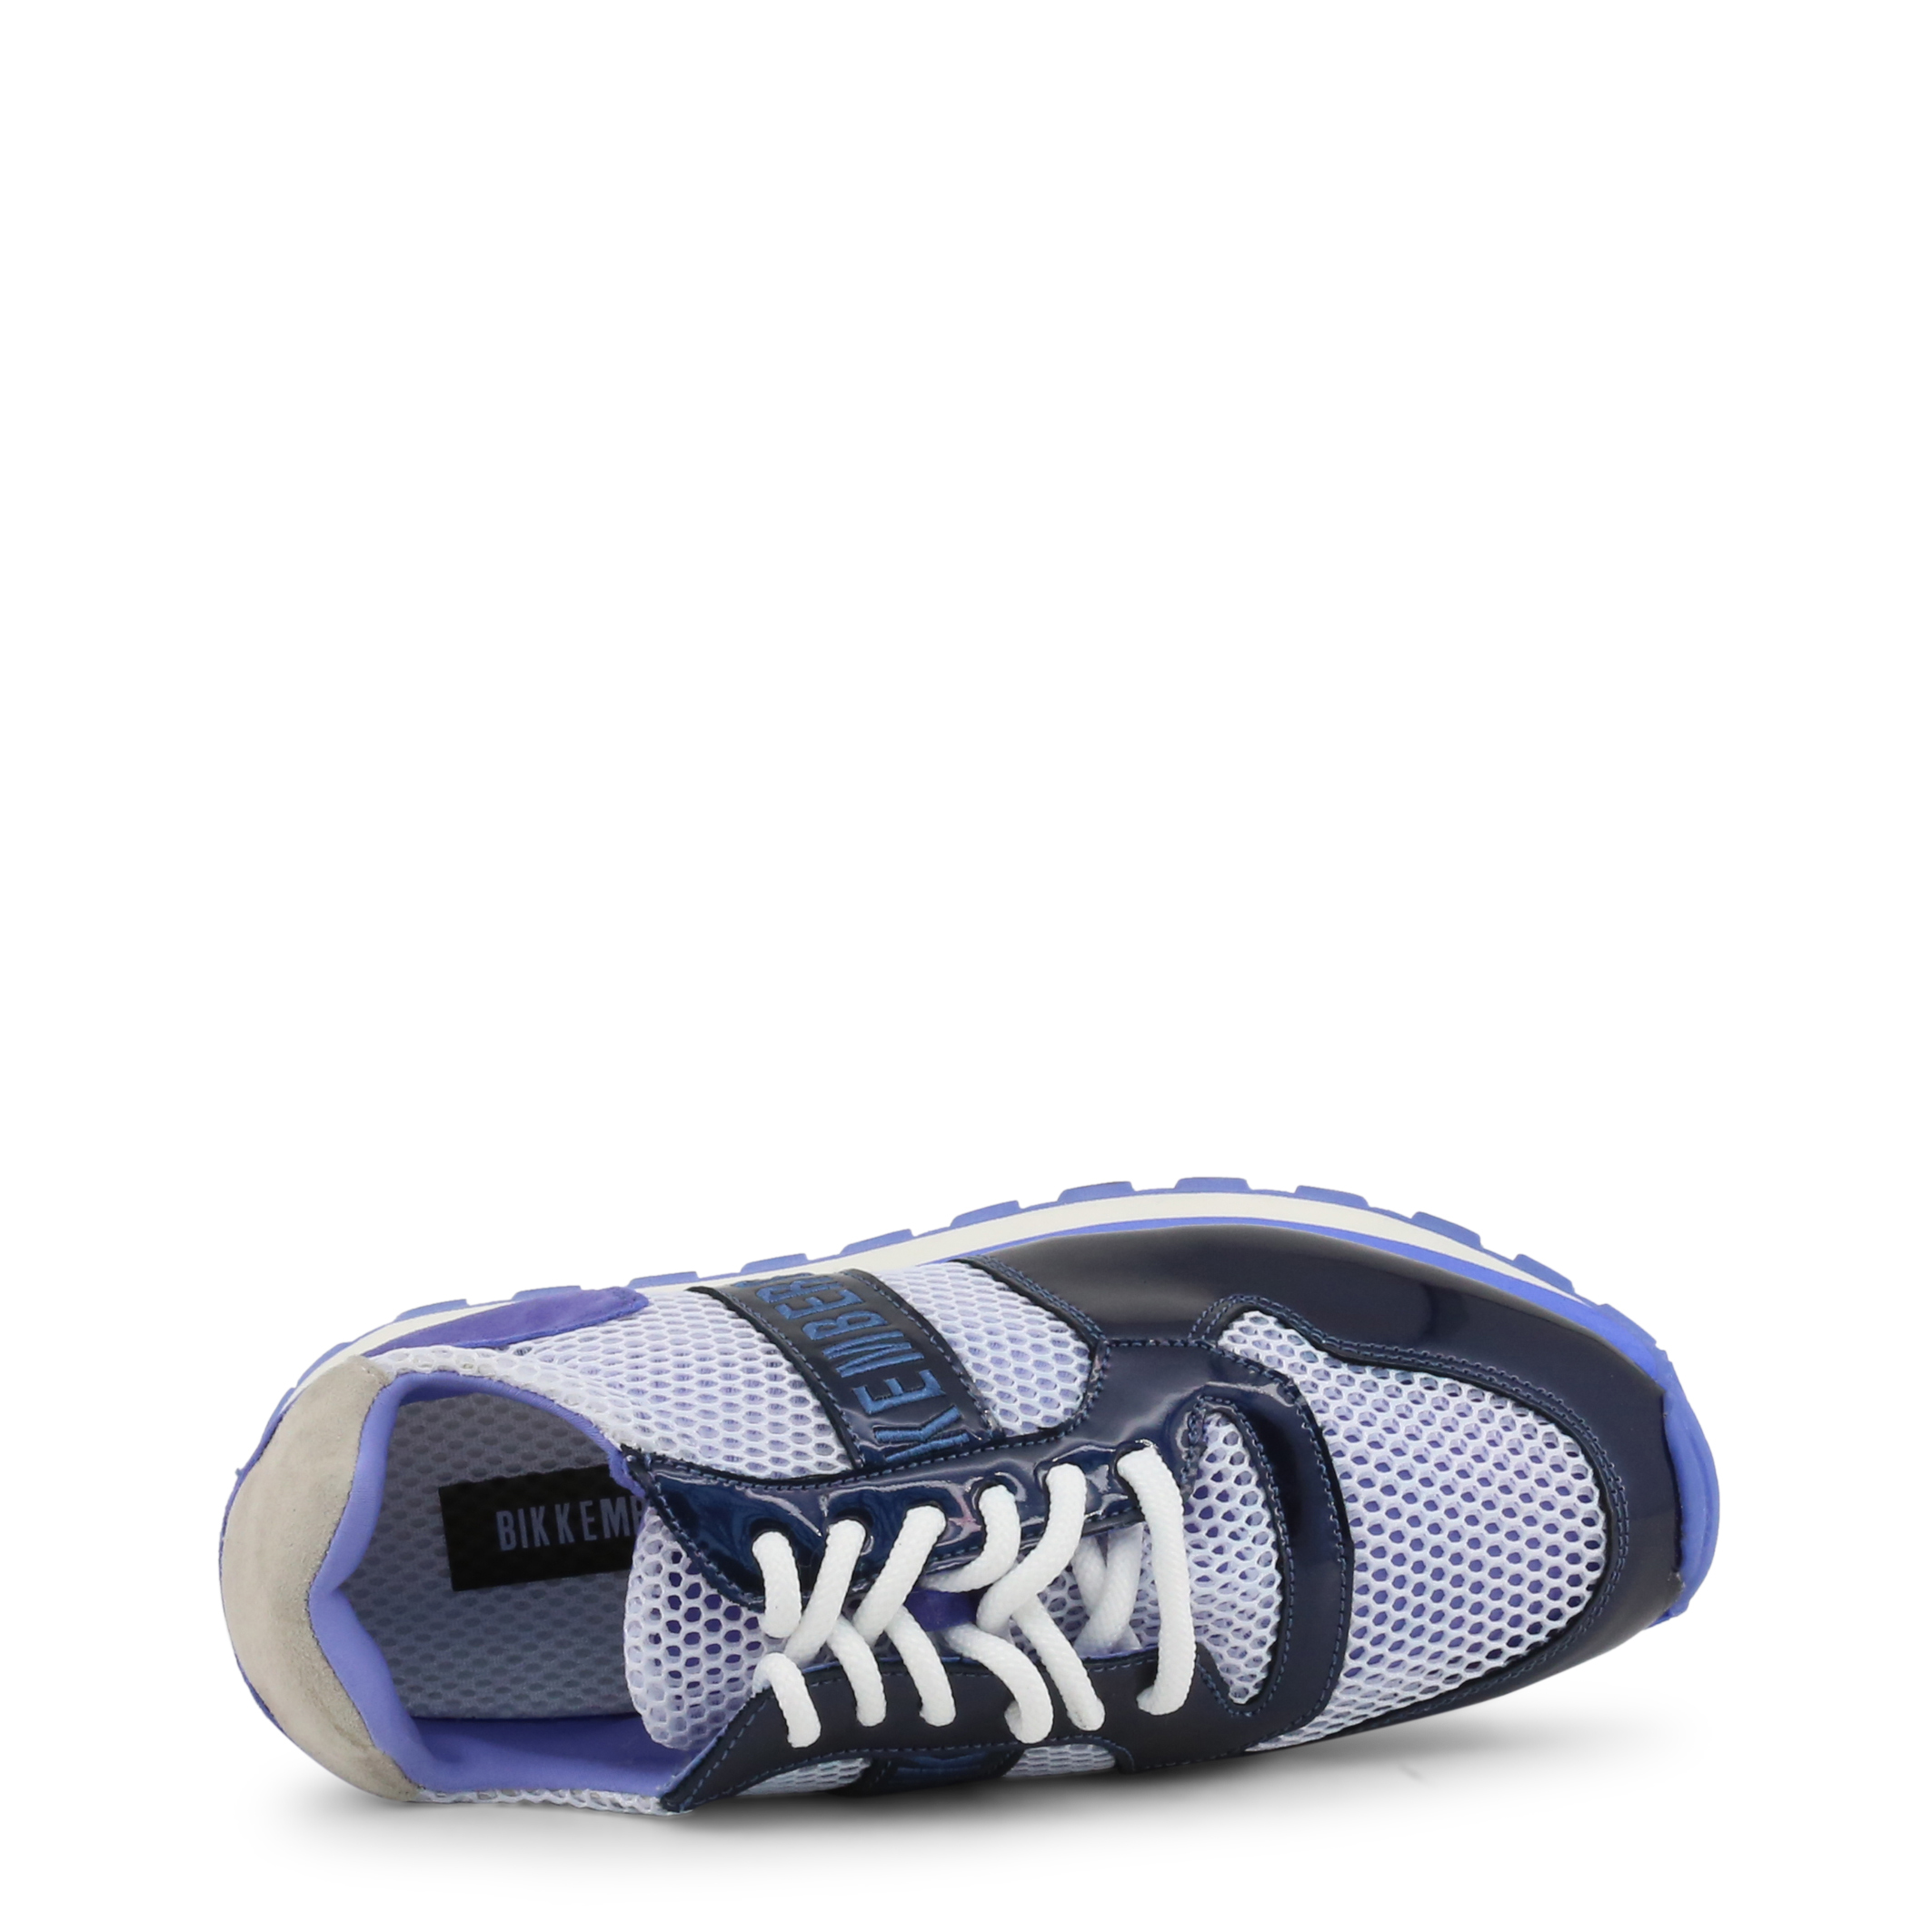 Baskets / Sneakers  Bikkembergs FEND-ER_2087-MESH blue